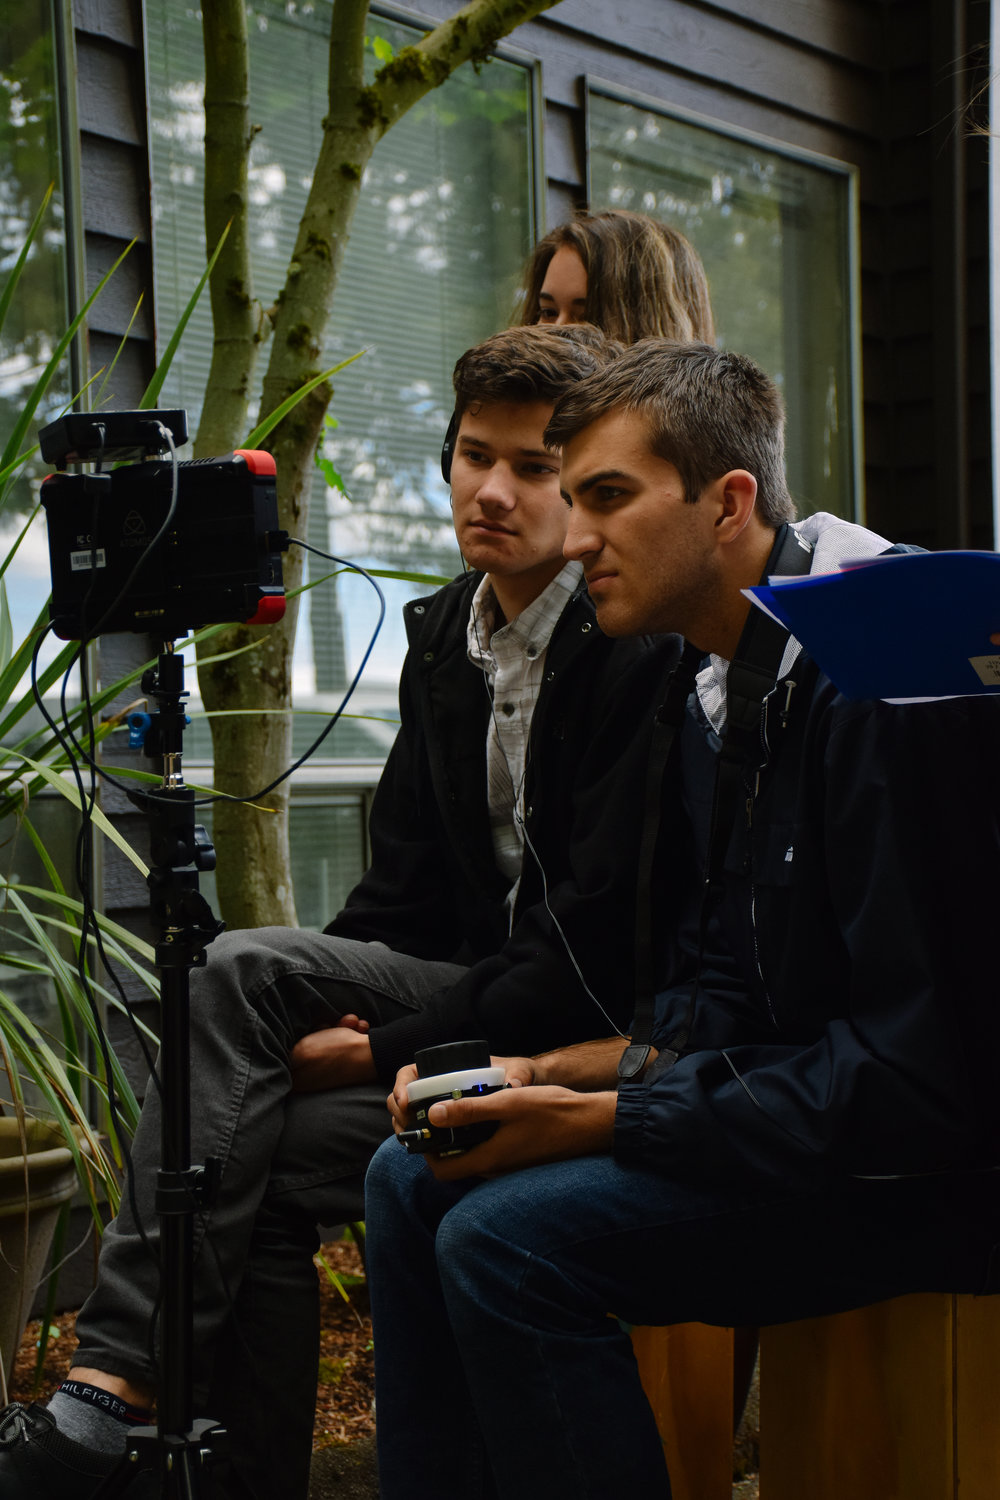 Director, Colton Van Til, sits behind monitor while one of our pledges, Zackary Rayner, pulls focus.